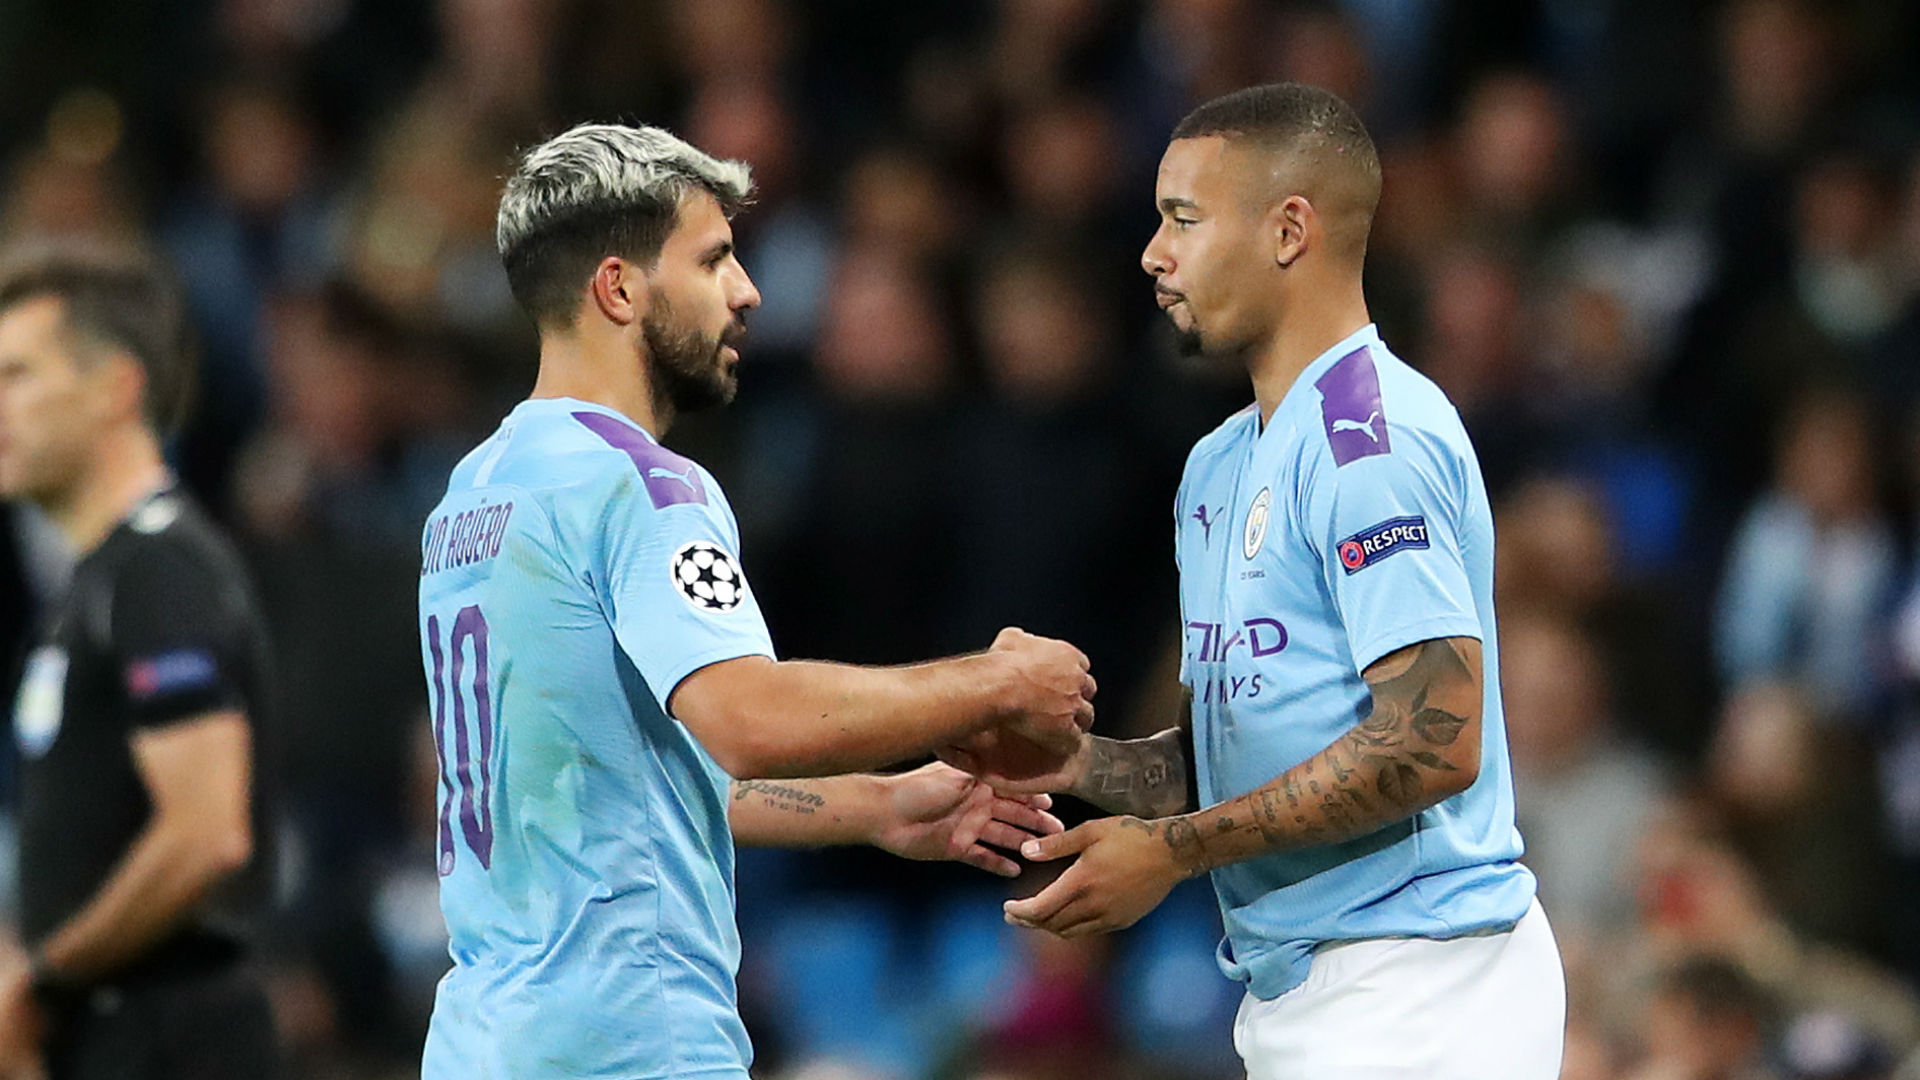 Jesus happy to play wide for Man City as he learns from clinical Aguero